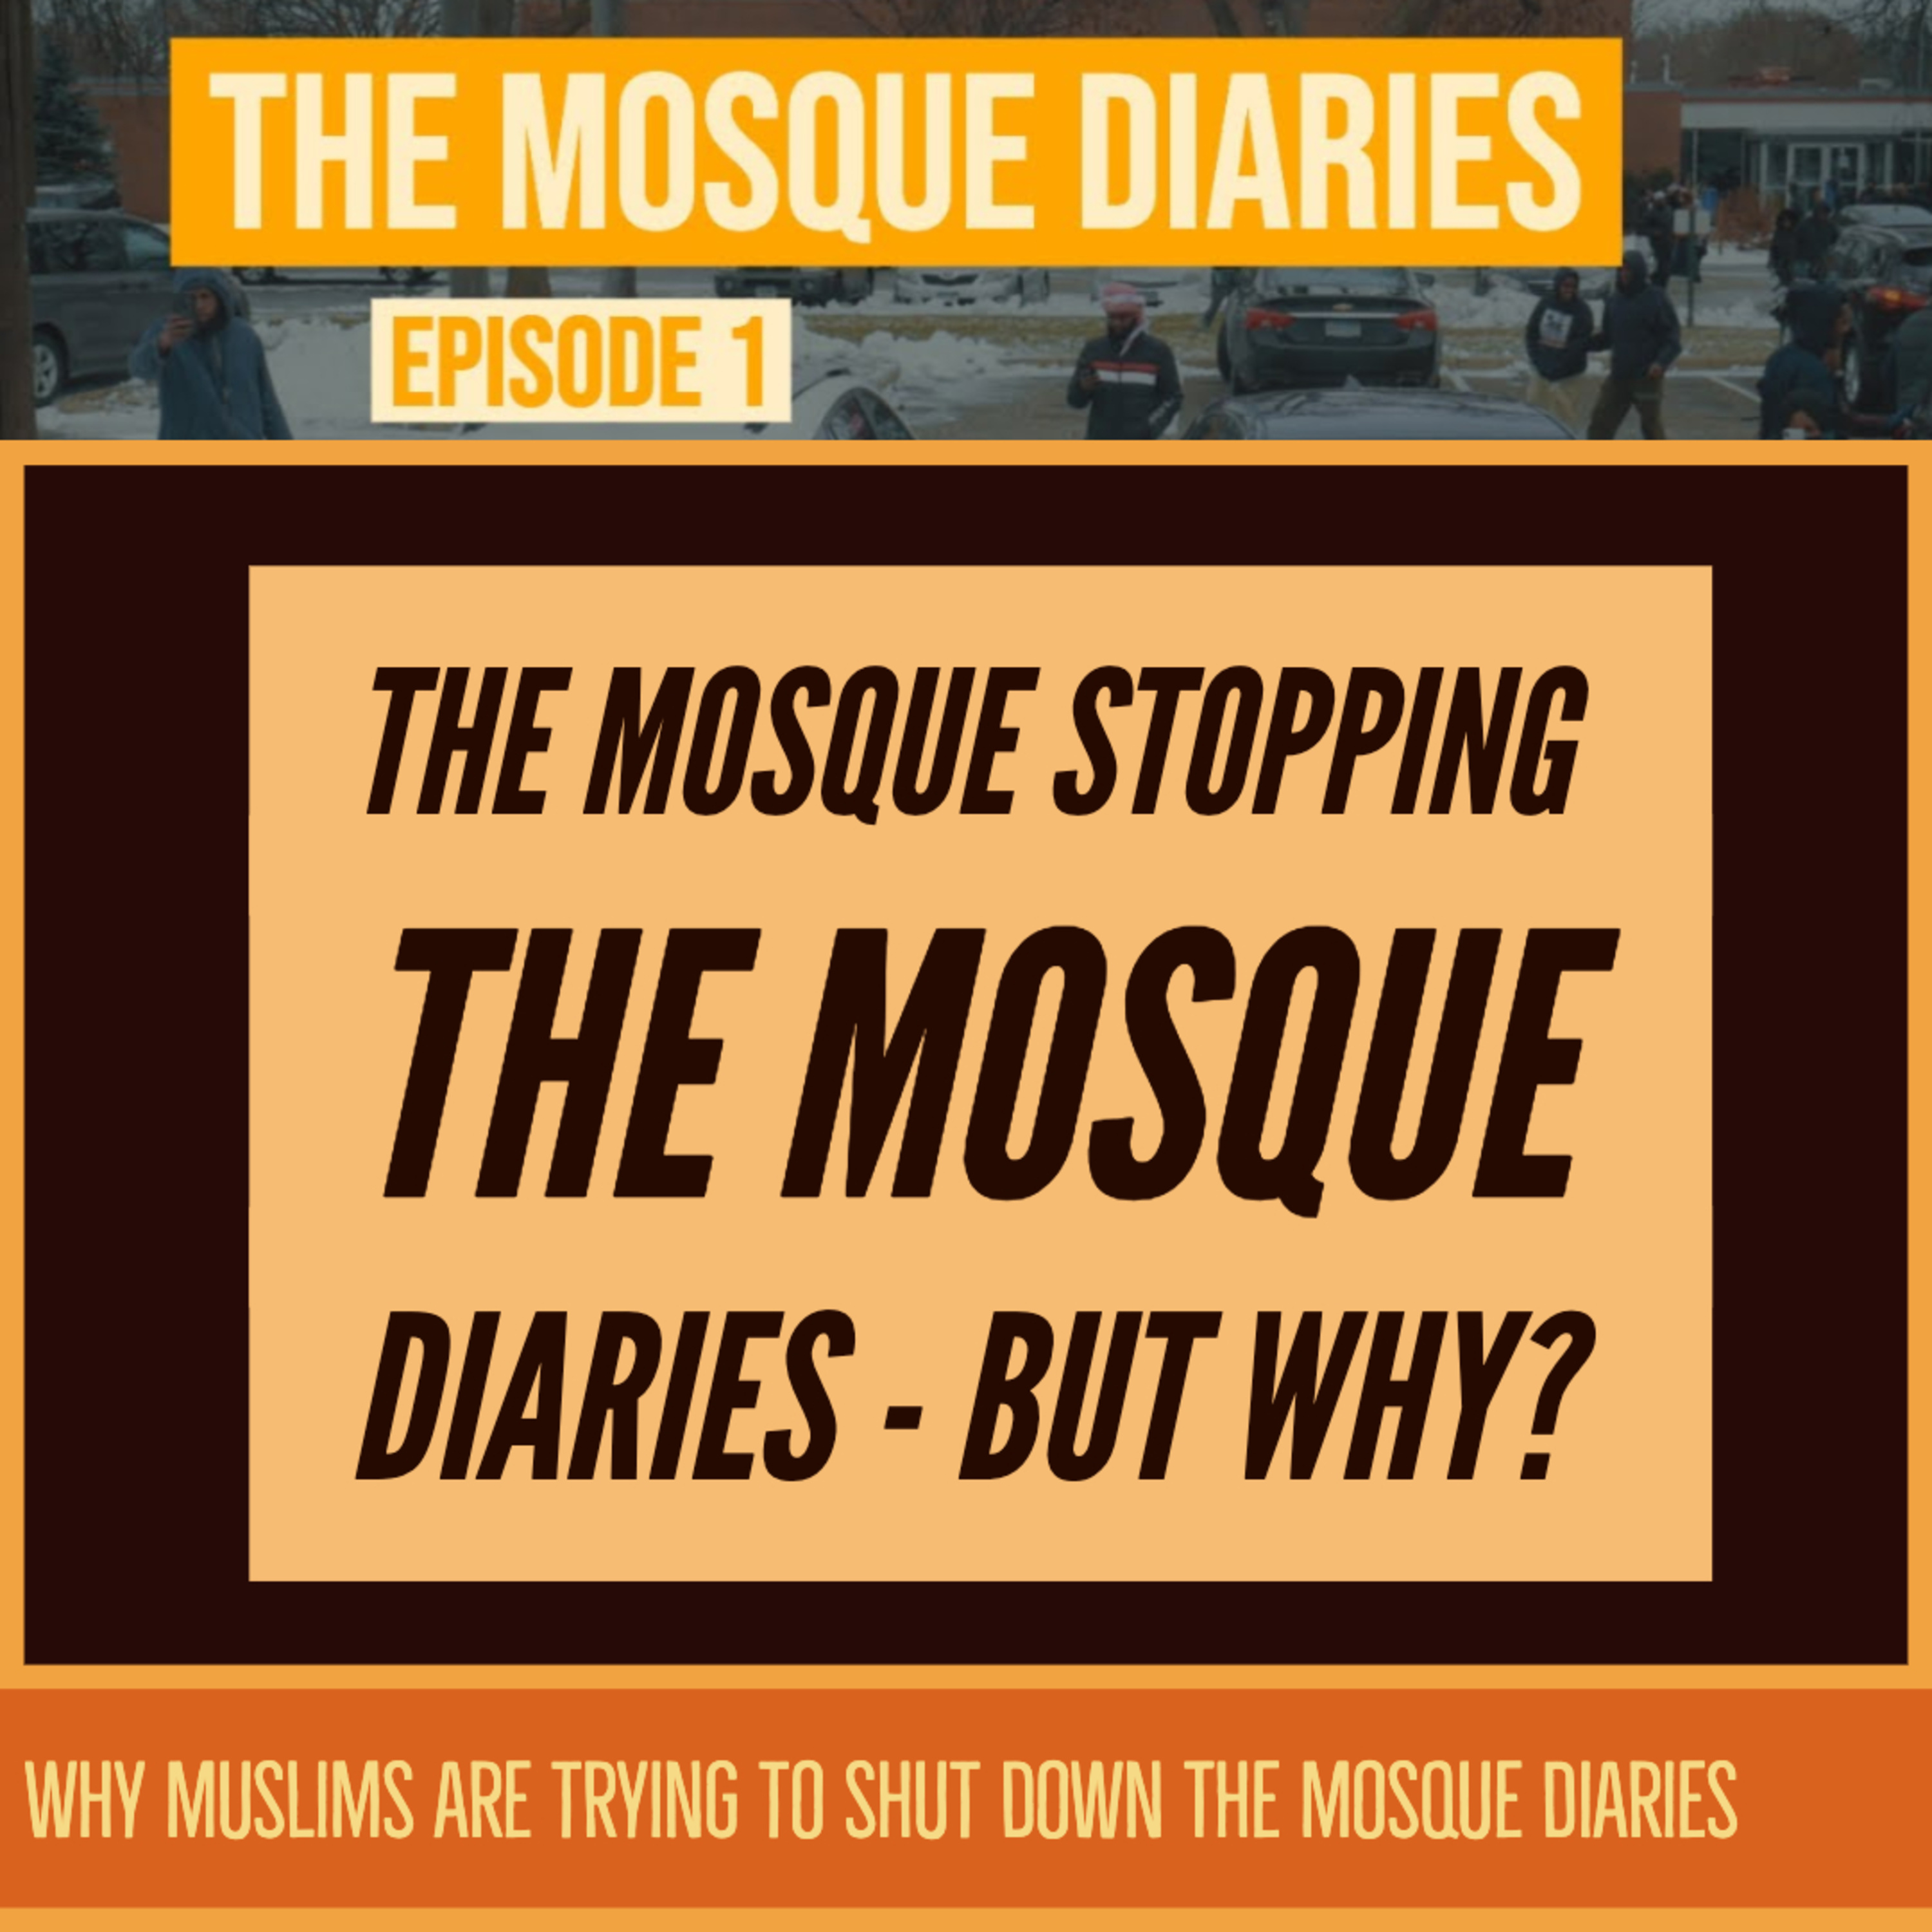 The Mosque Stopping The Mosque Diaries - But Why?